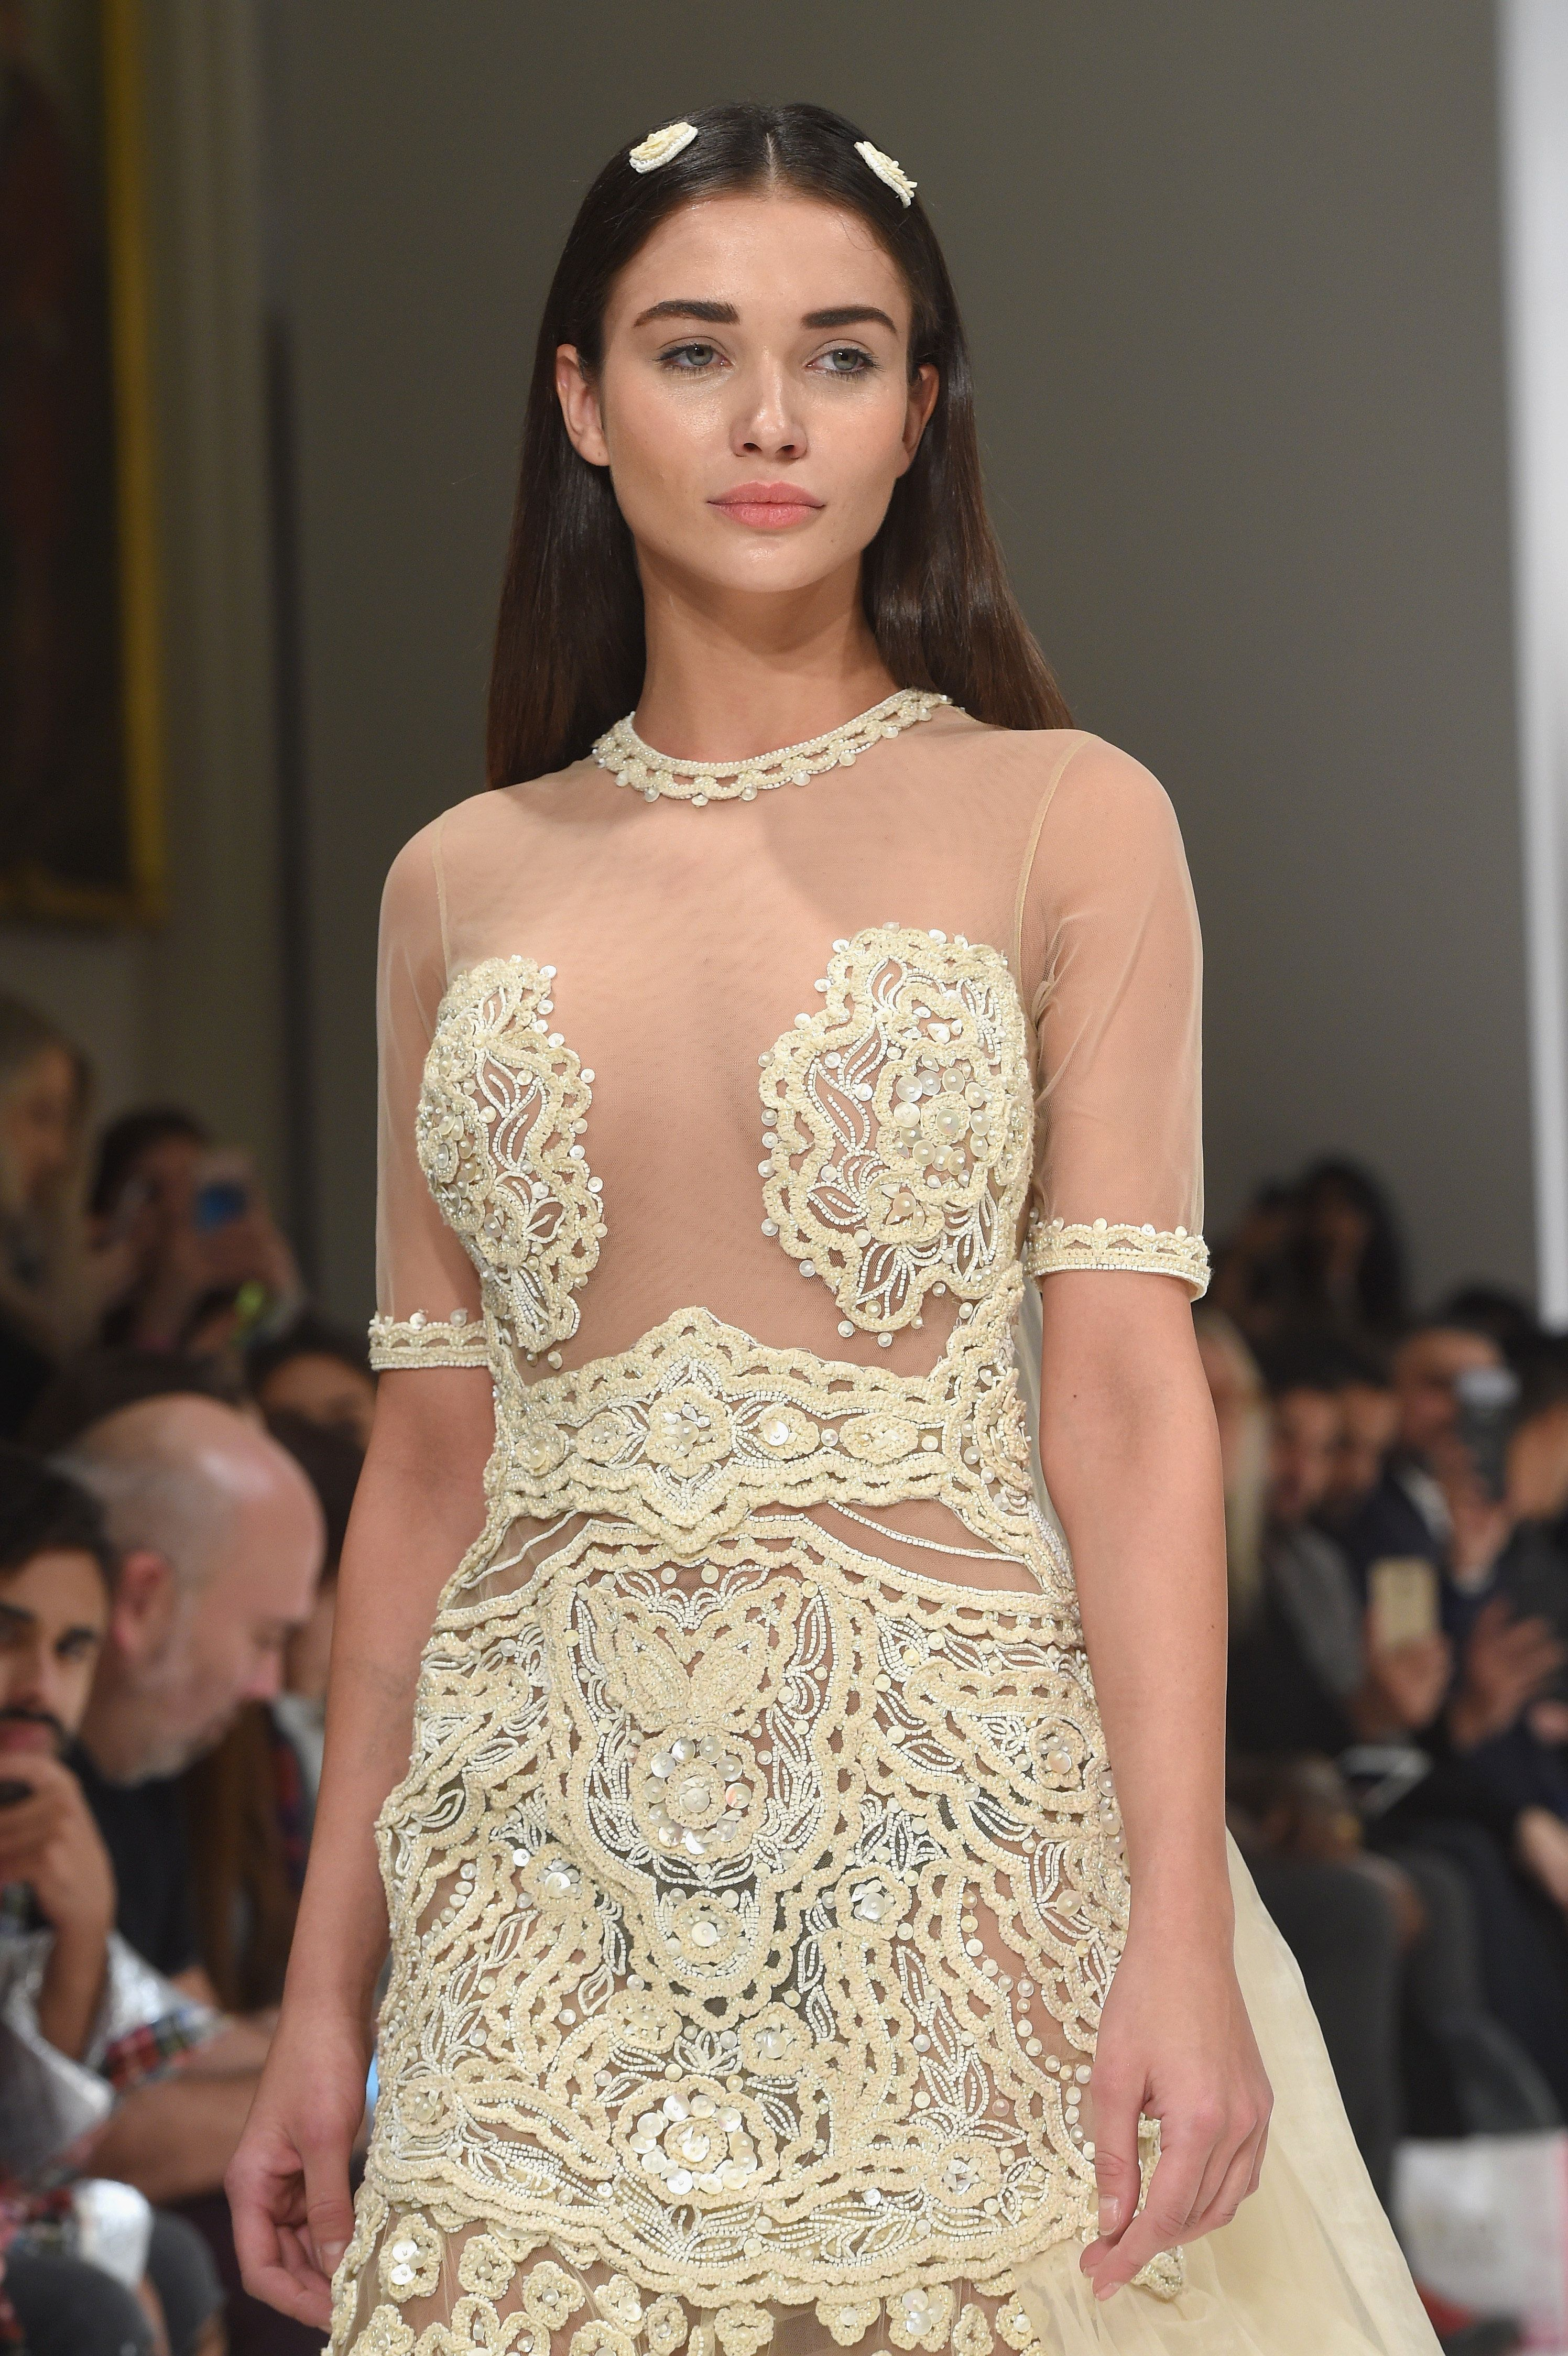 This Nearly-Naked Wedding Dress Is The Most Popular Look Of London Fashion